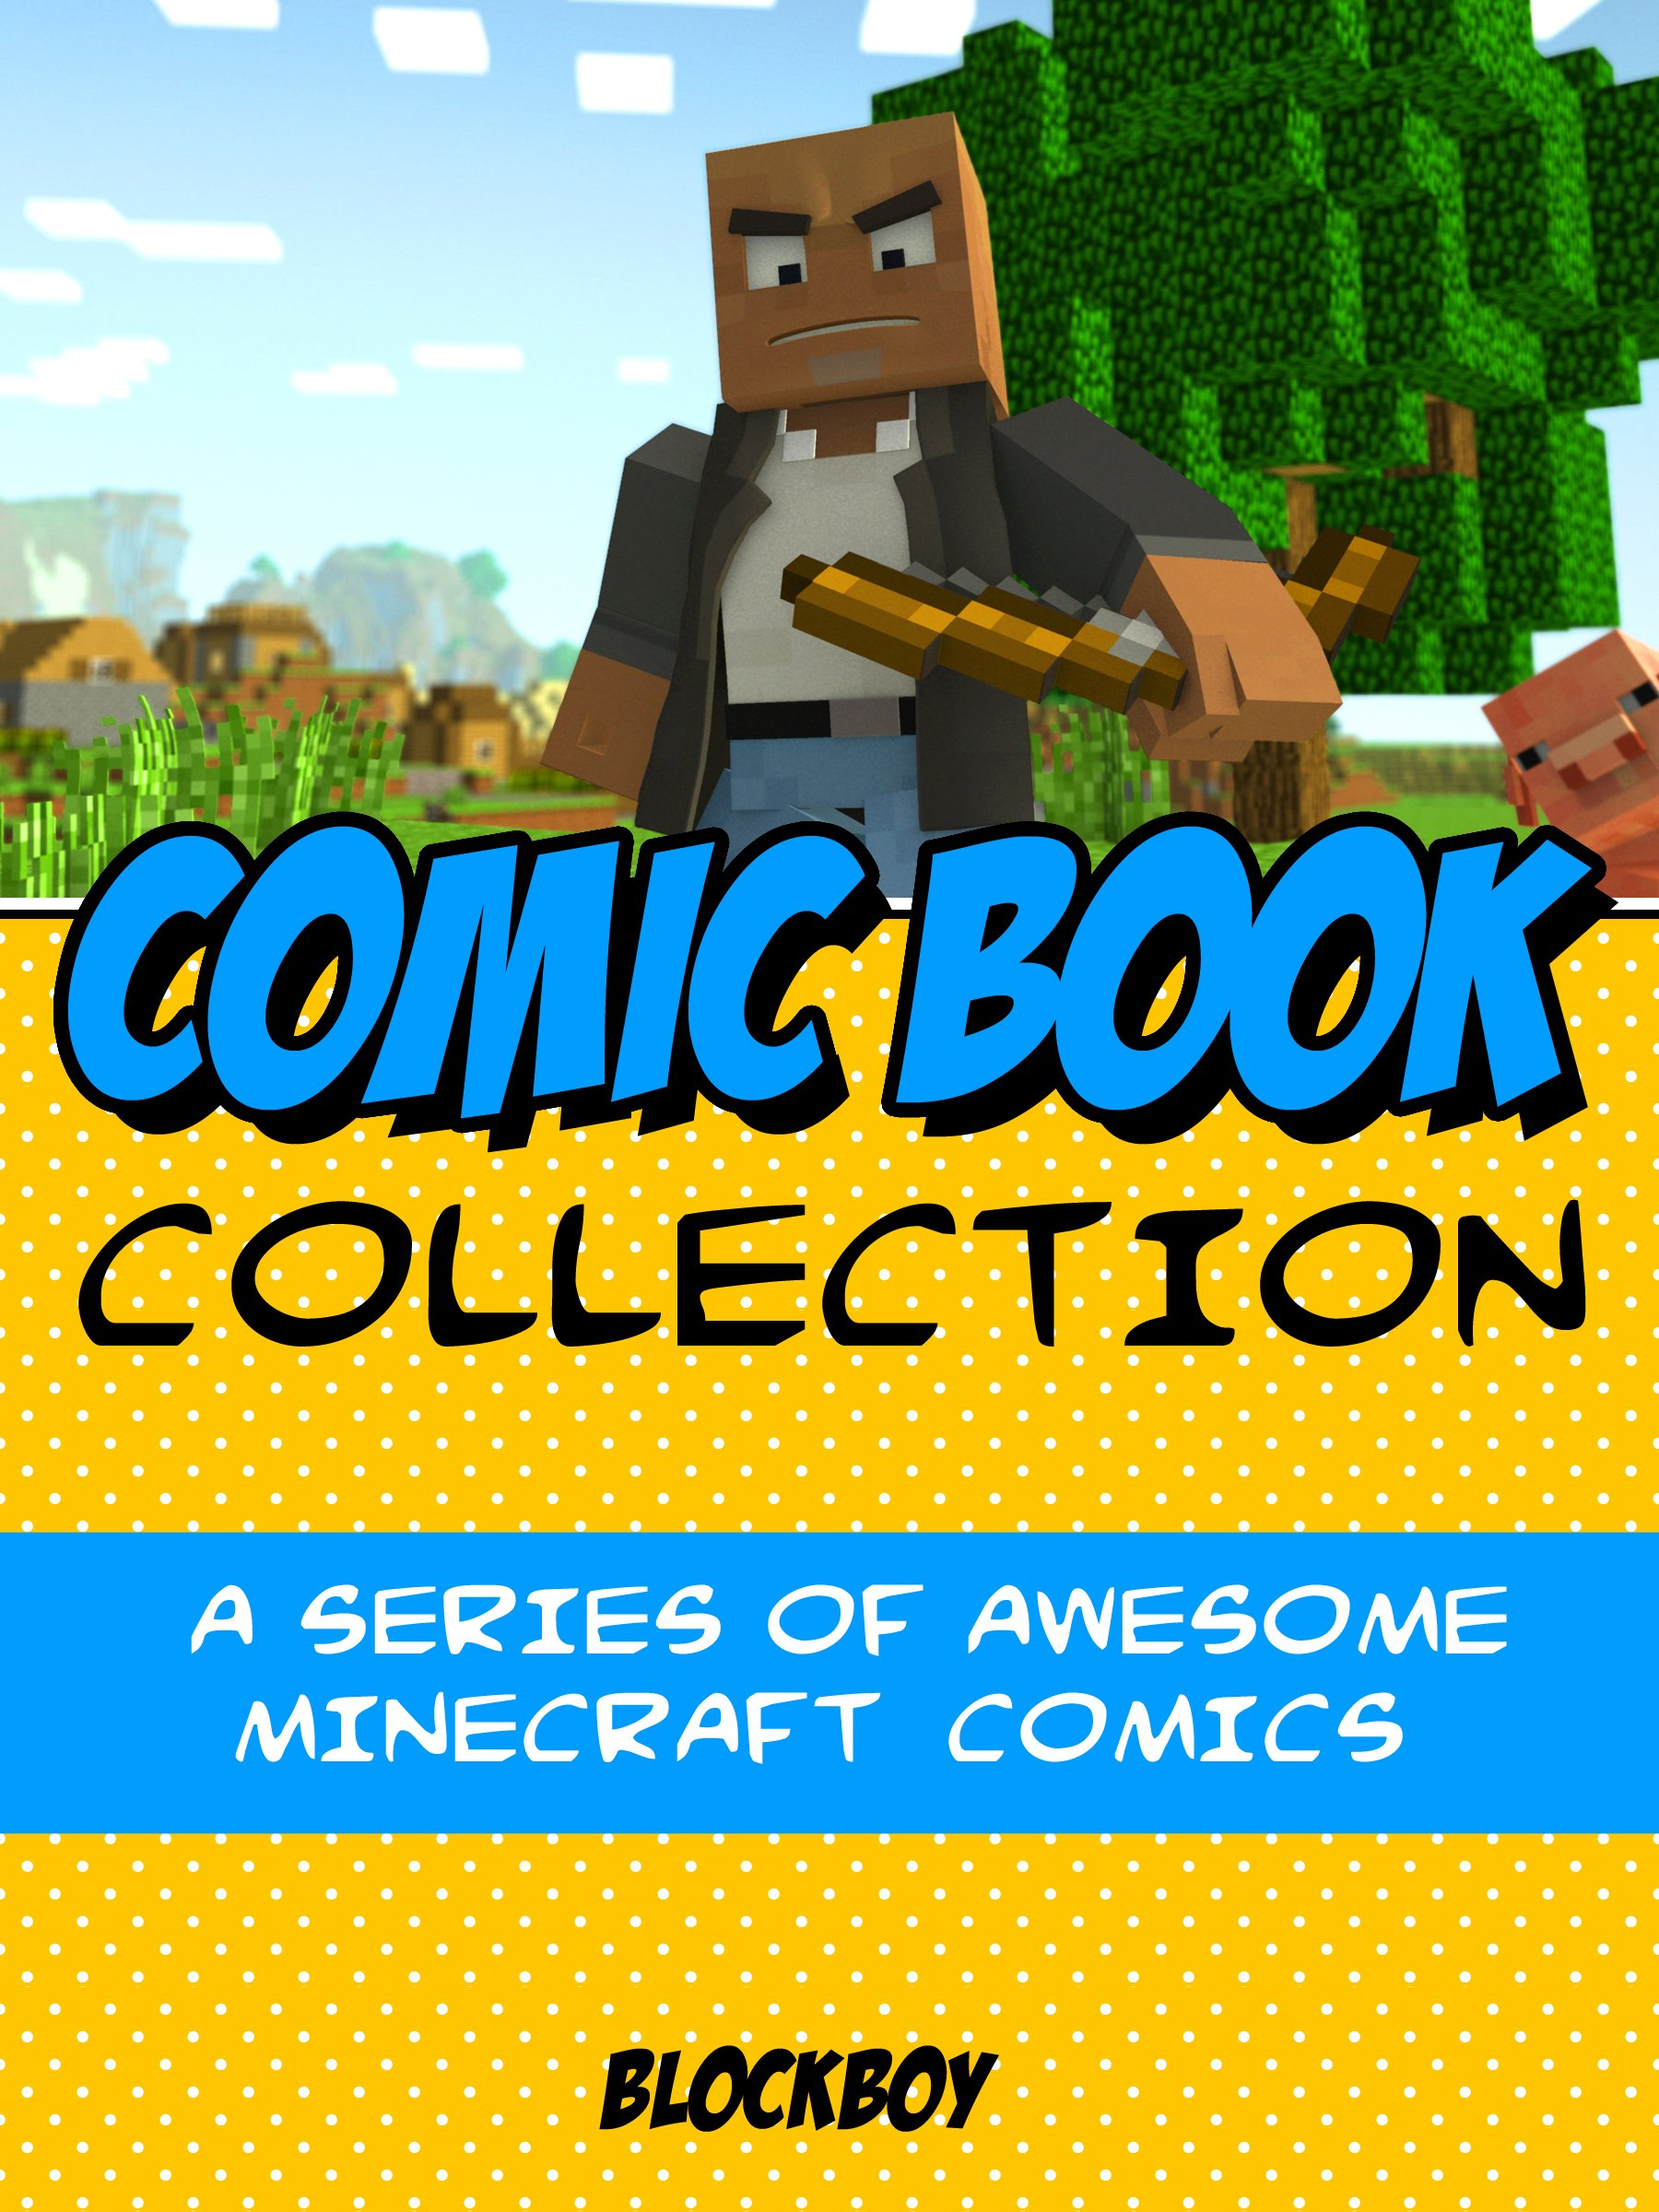 Comic Book Collection  The CreeperSlayer12 Series   AWESOME Minecraft Comics  Unofficial Minecraft Comic Books   English Edition